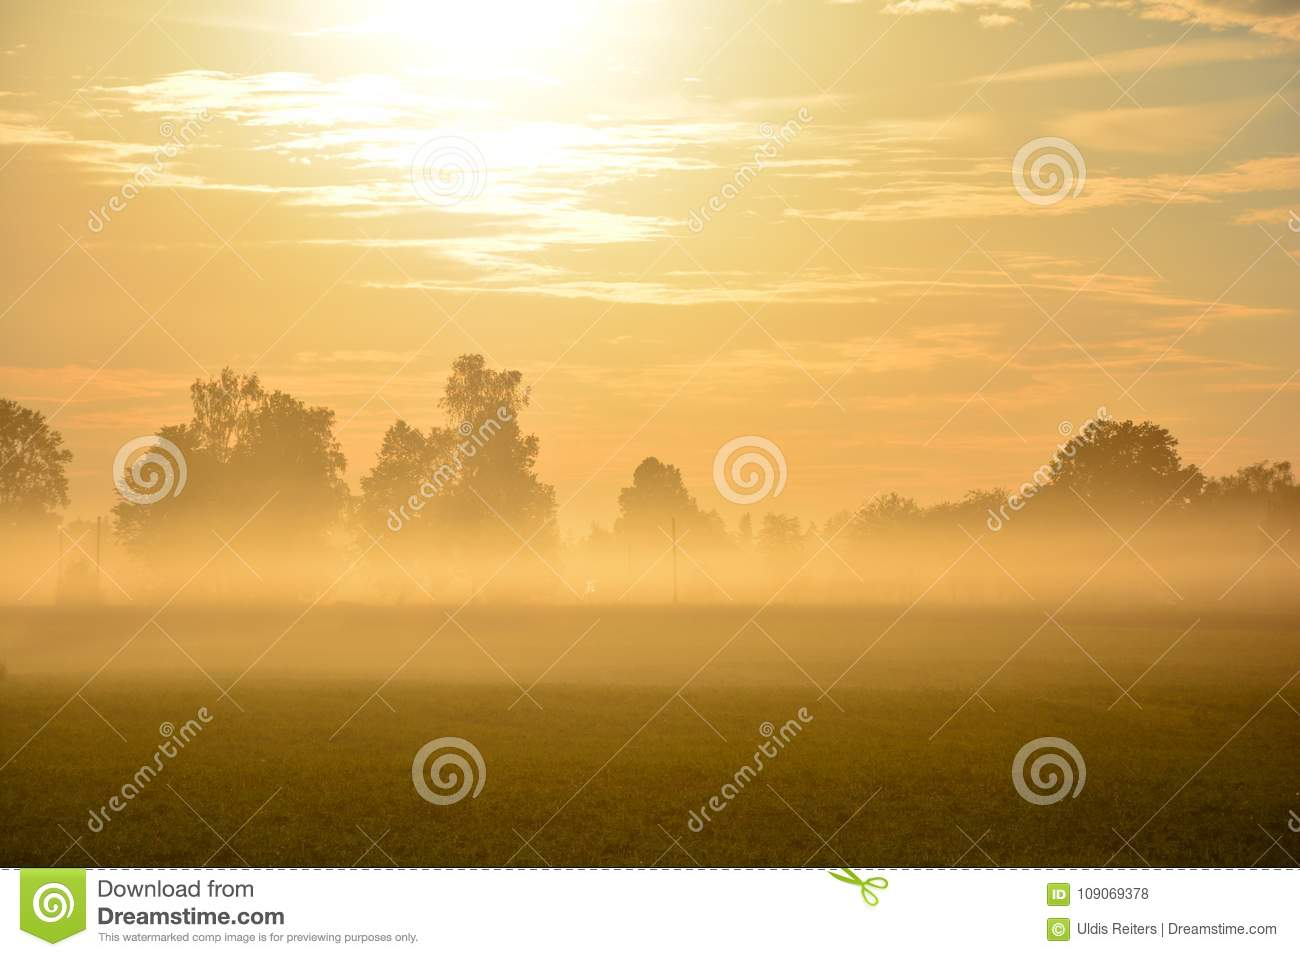 Fog in field in sunset time